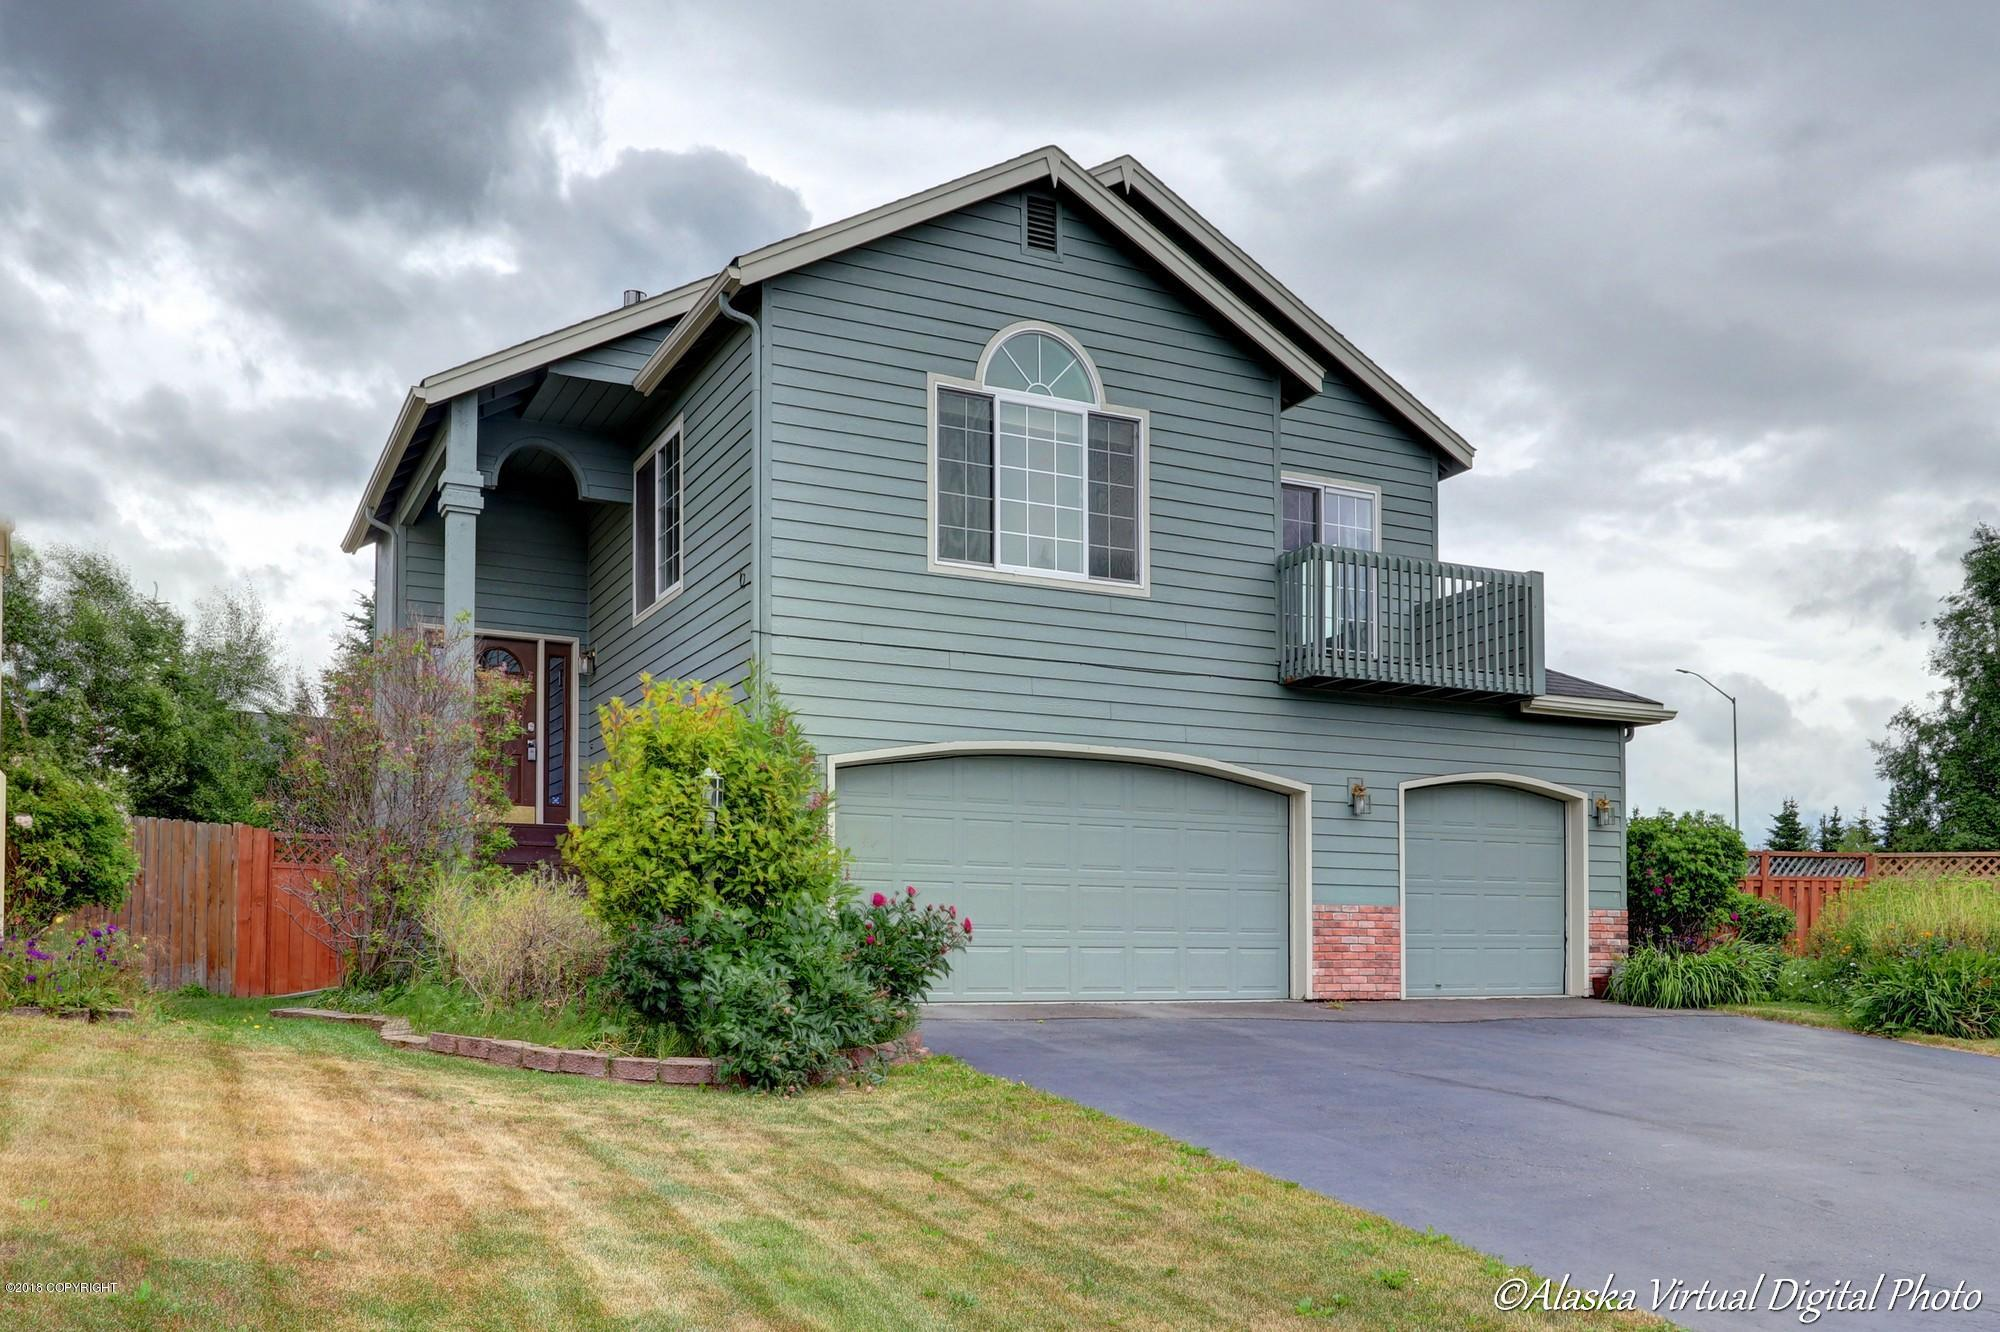 2001 Kimberly Lyn Circle Anchorage  - Mehner Weiser Real Estate Real Estate